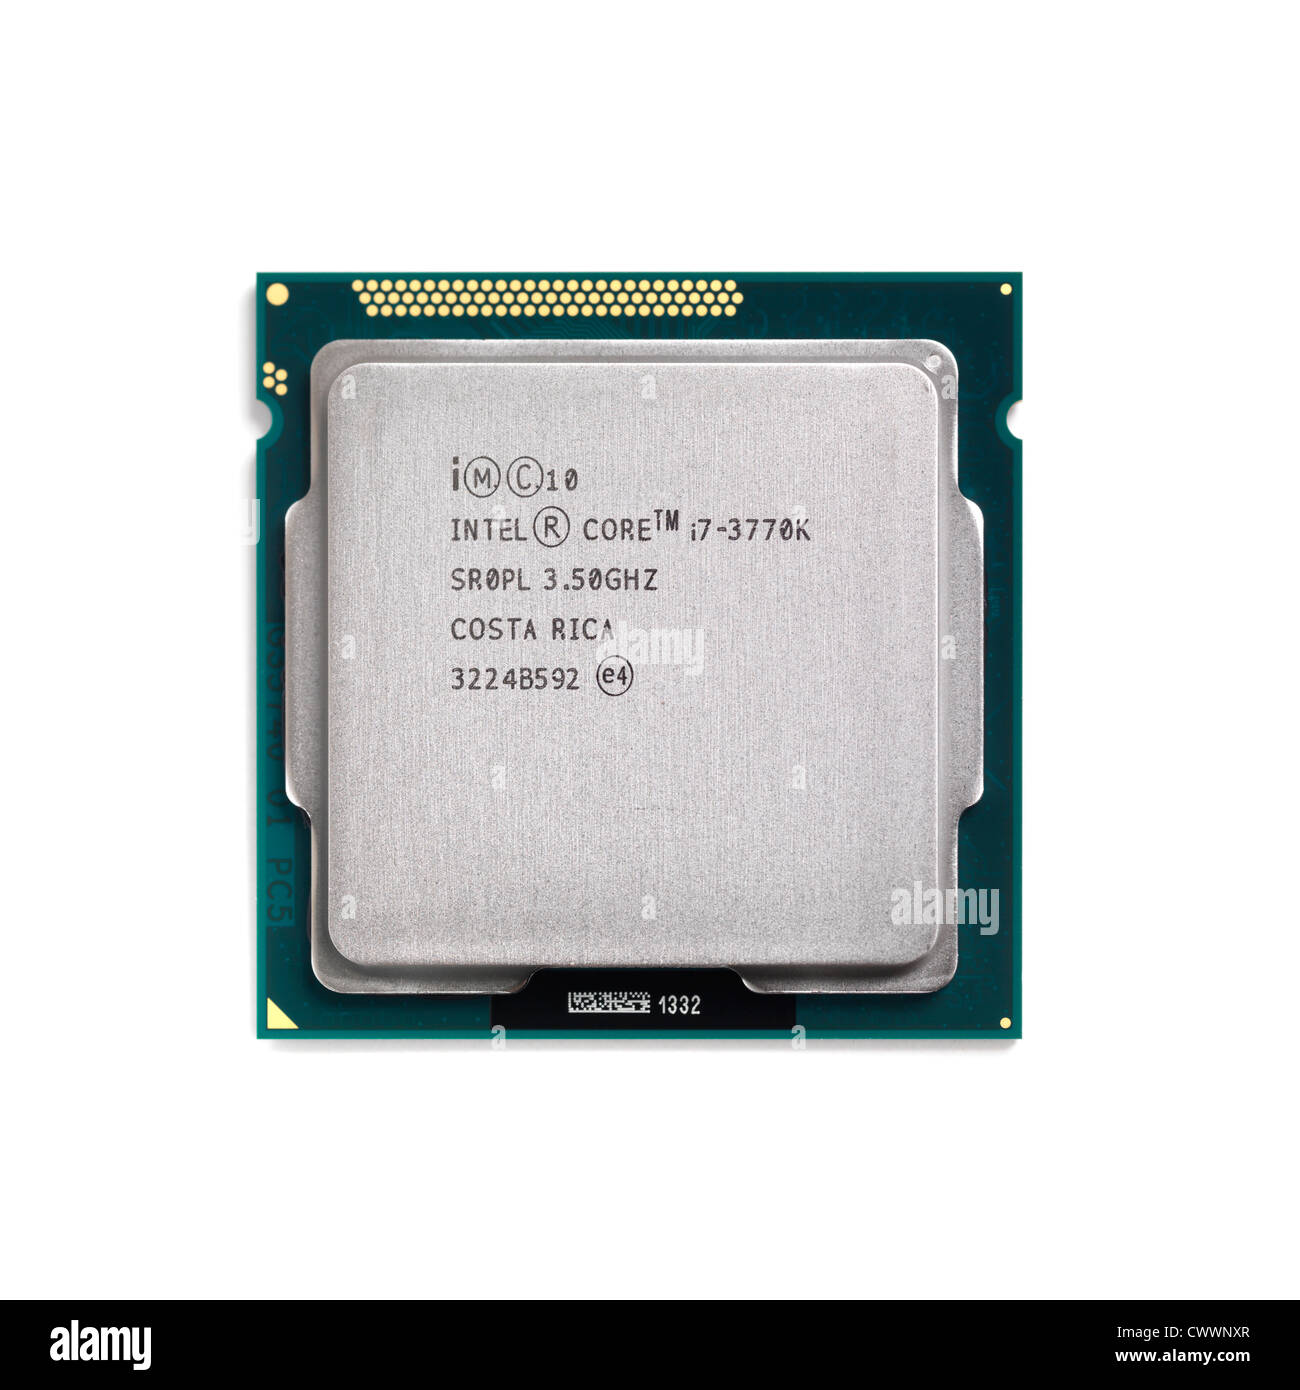 Intel Core i7 3770K processor CPU isolated on white background - Stock Image